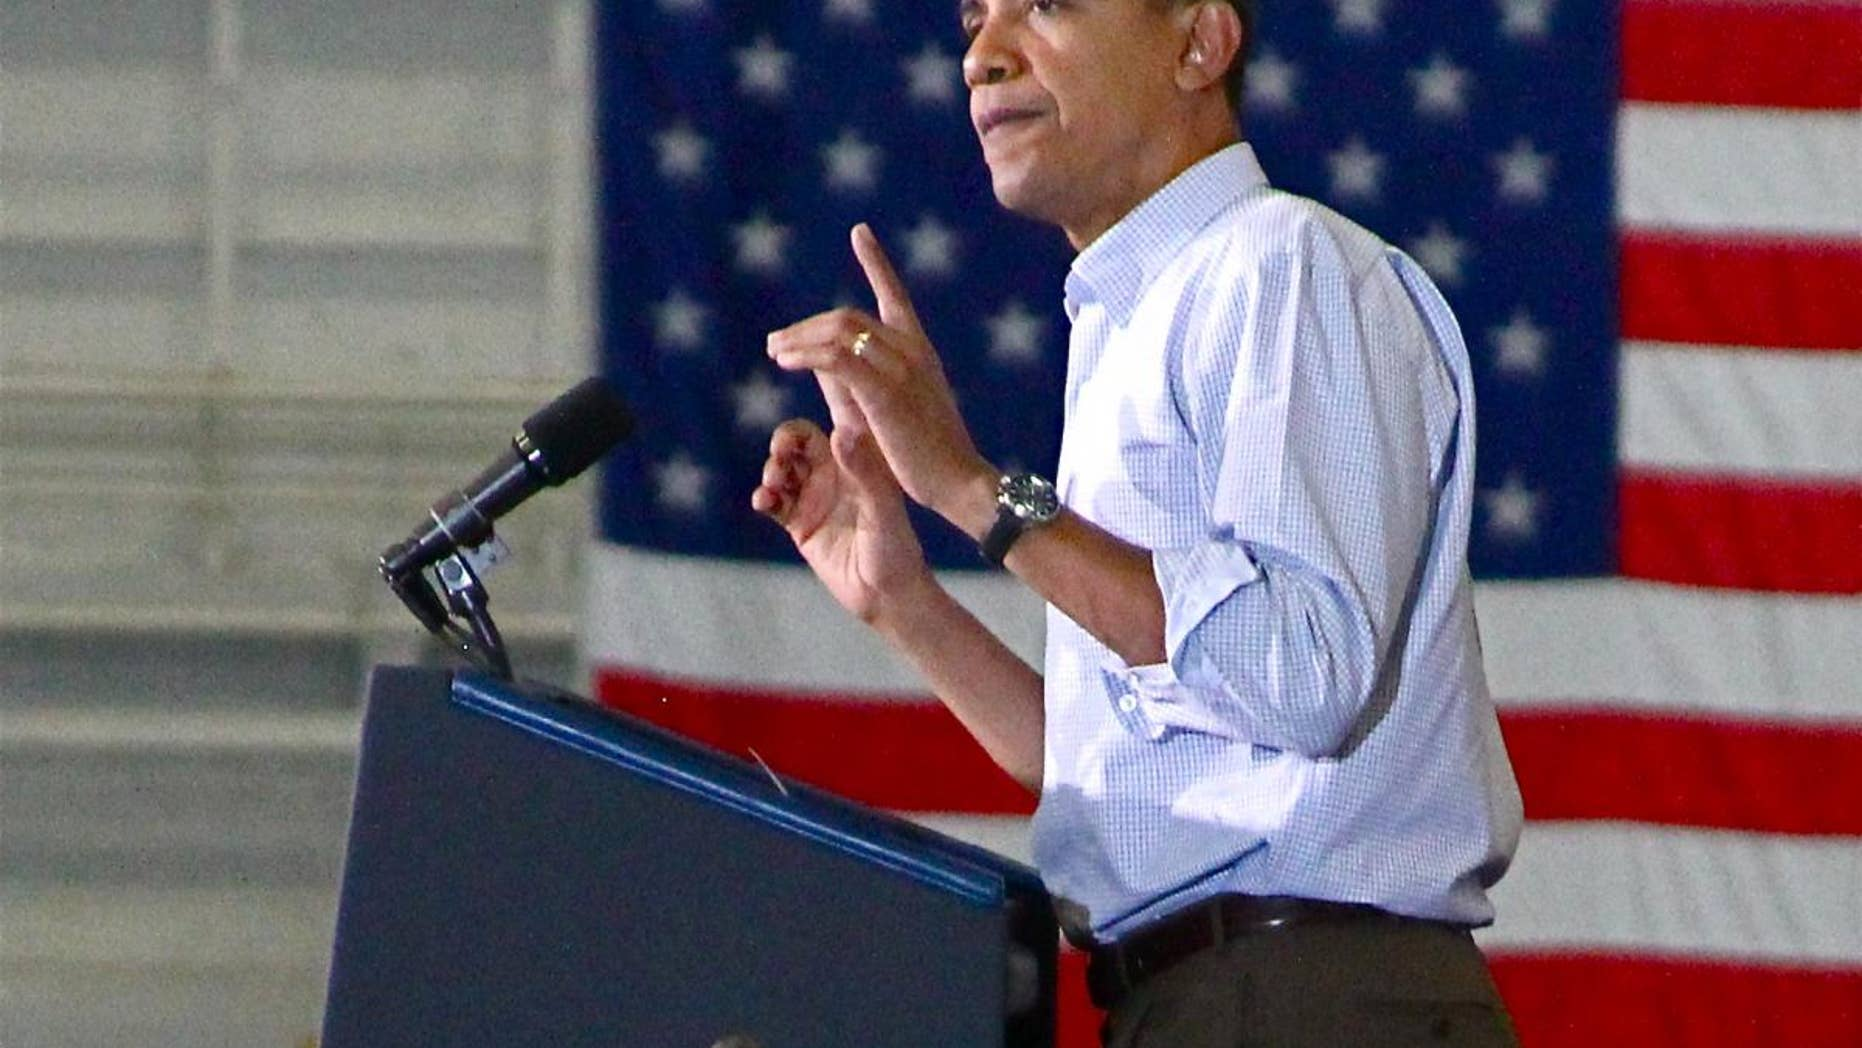 President Obama at a rally for Gubernatorial Candidate Mark Dayton (D-MN), Oct. 23 (Fox Photo)